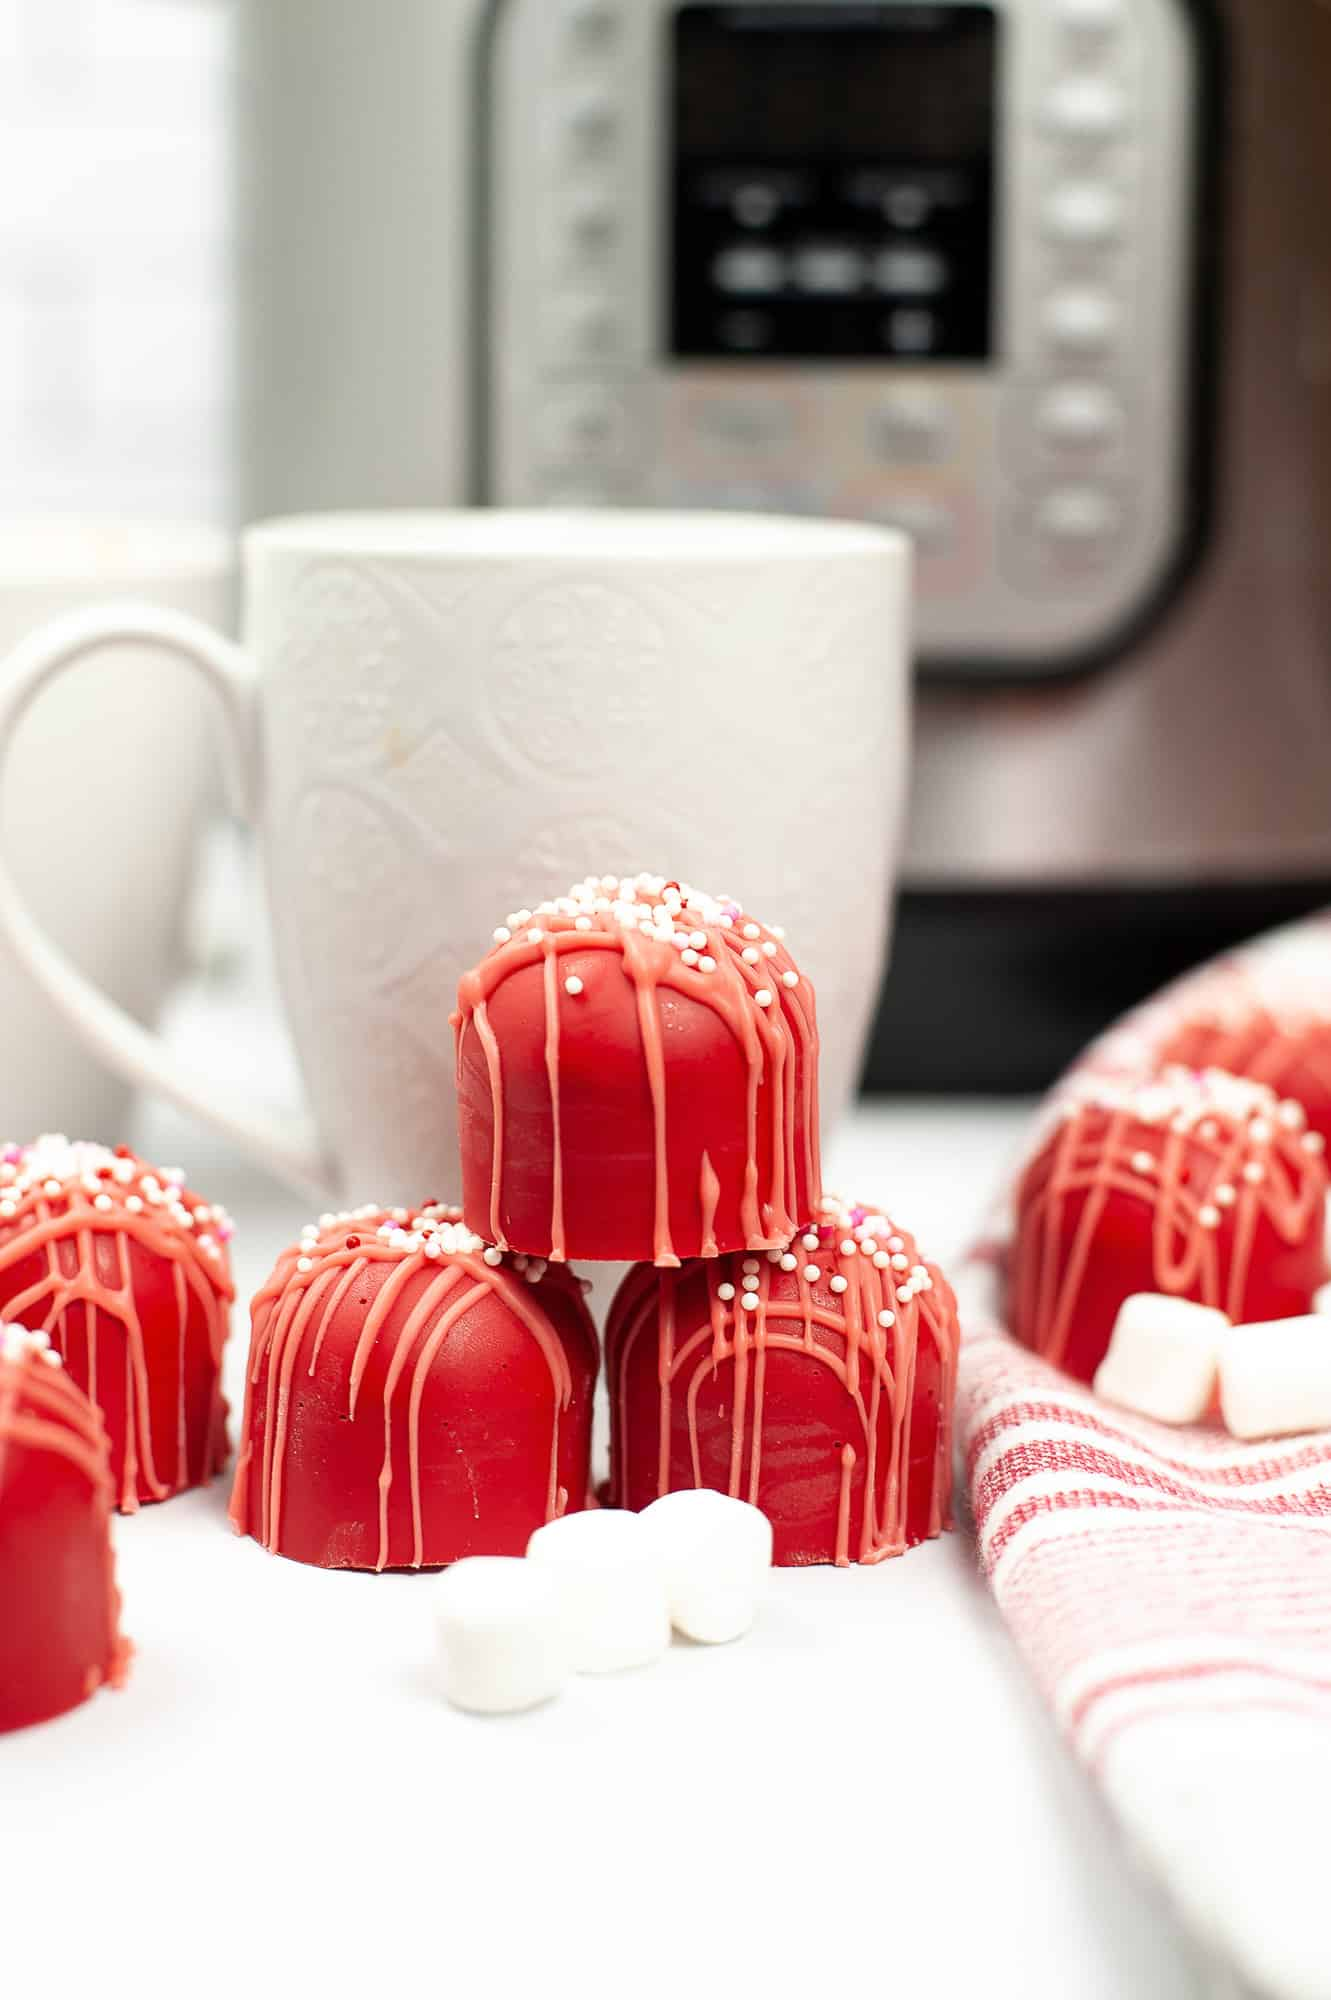 red hot cocoa bombs stacked in front of white mug